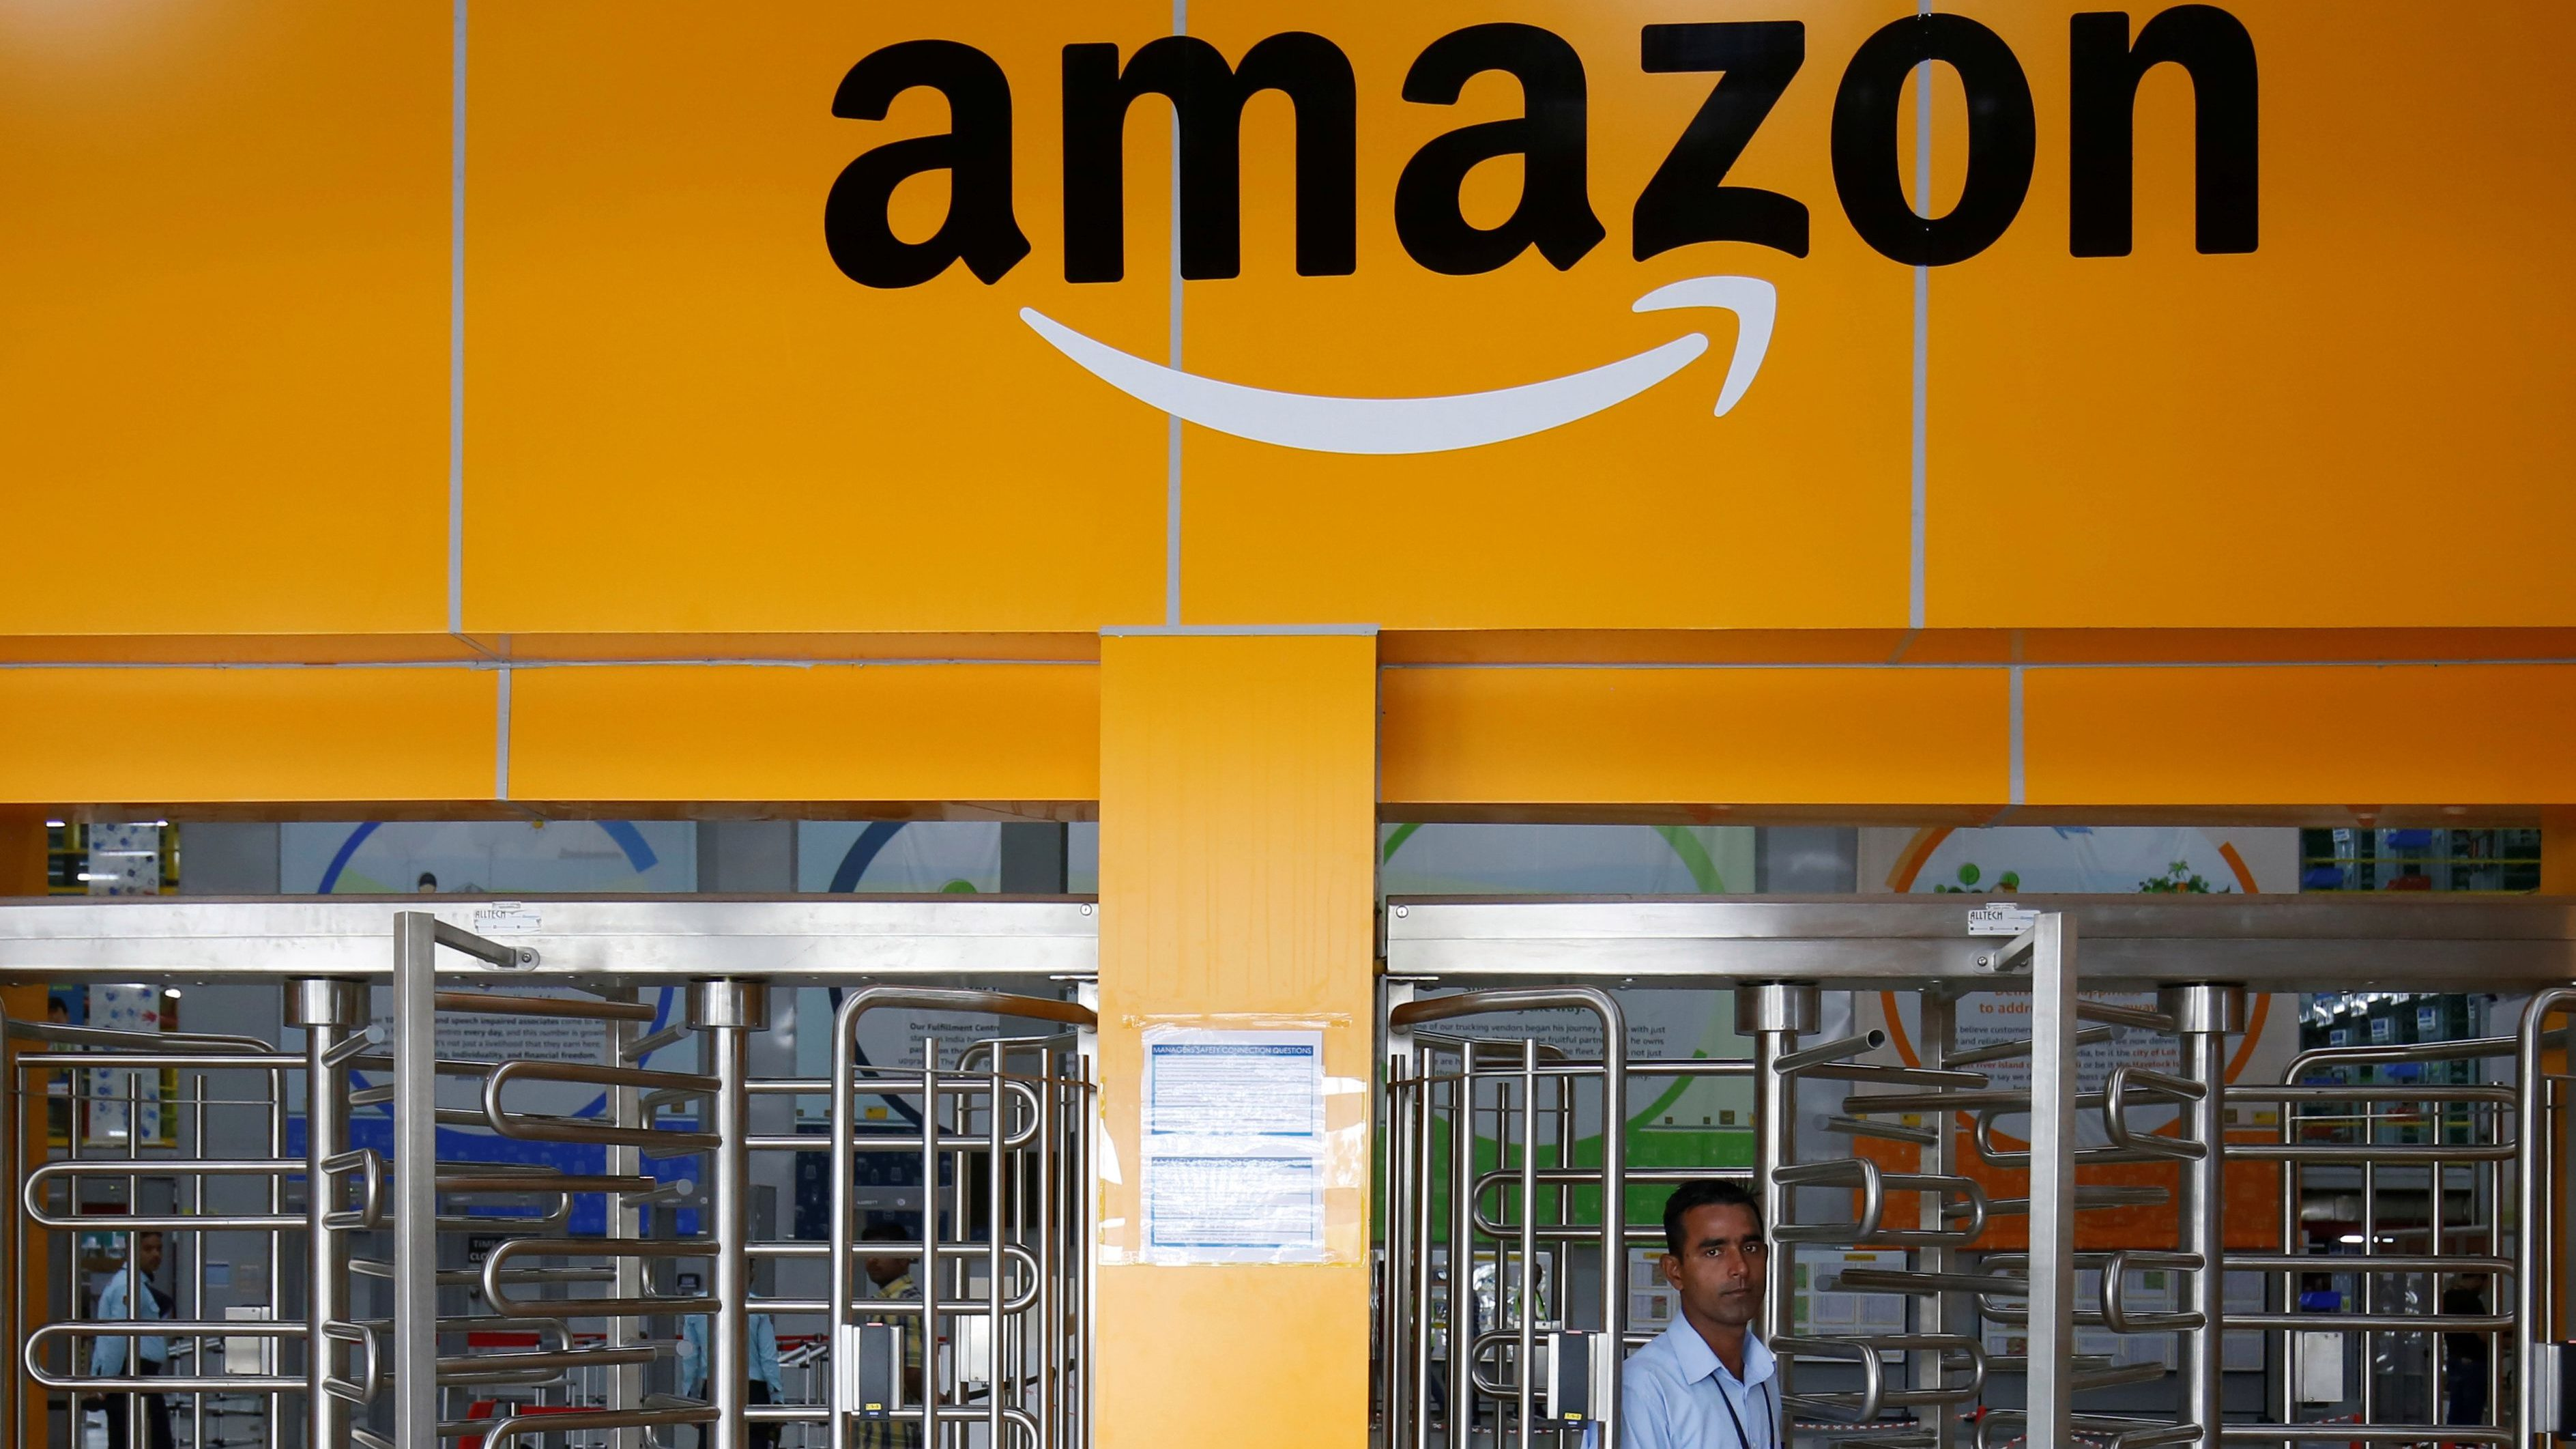 An employee of Amazon walks through a turnstile gate inside an Amazon Fulfillment Centre (BLR7) on the outskirts of Bengaluru